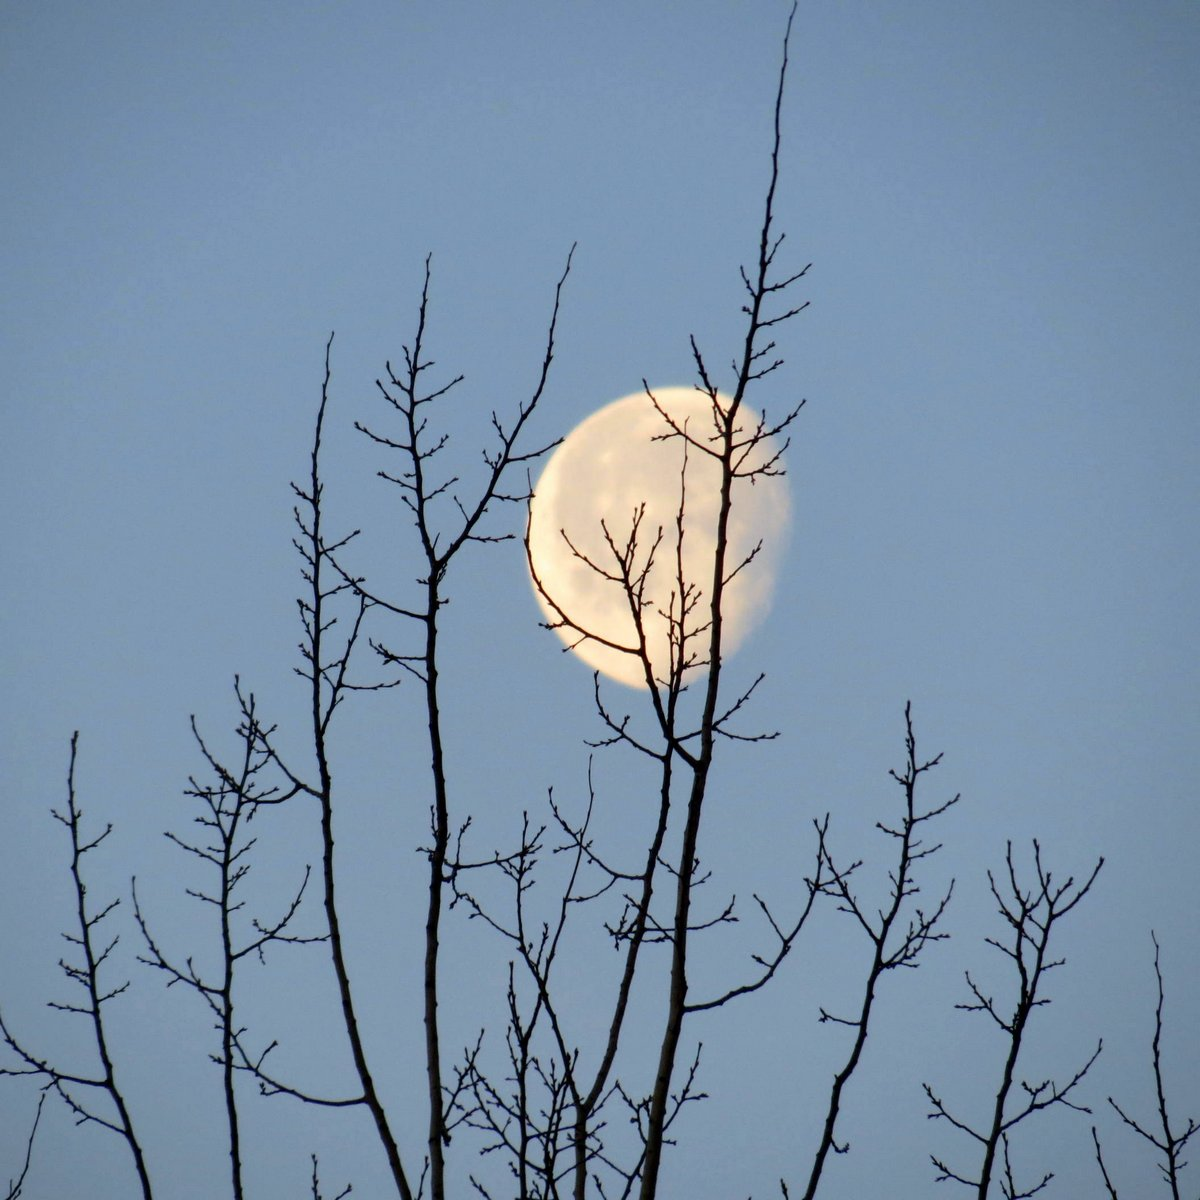 1. Moon on March First